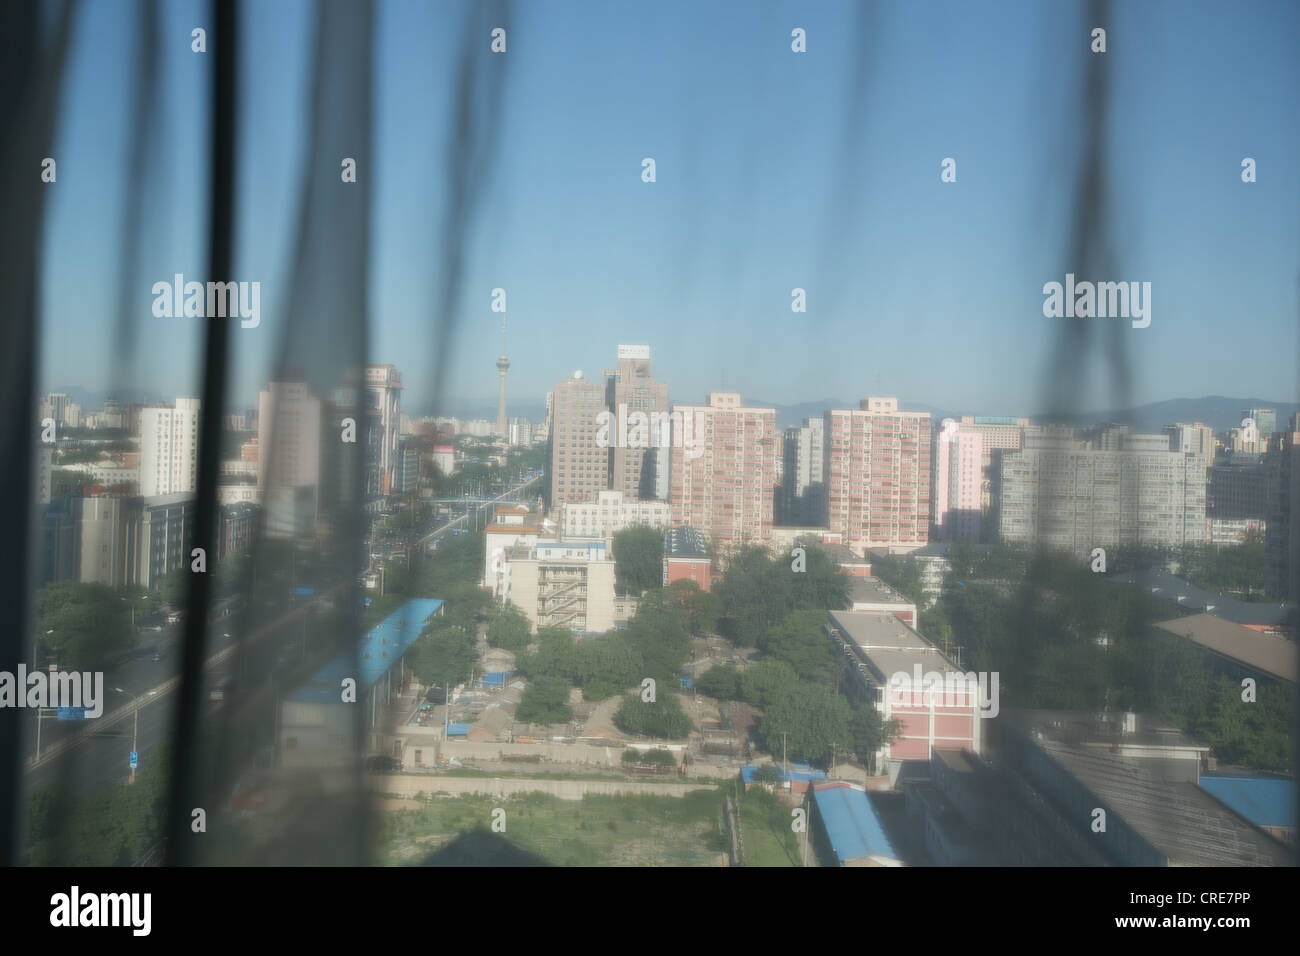 View from room in Presidential Hotel, in Beijing, China. - Stock Image